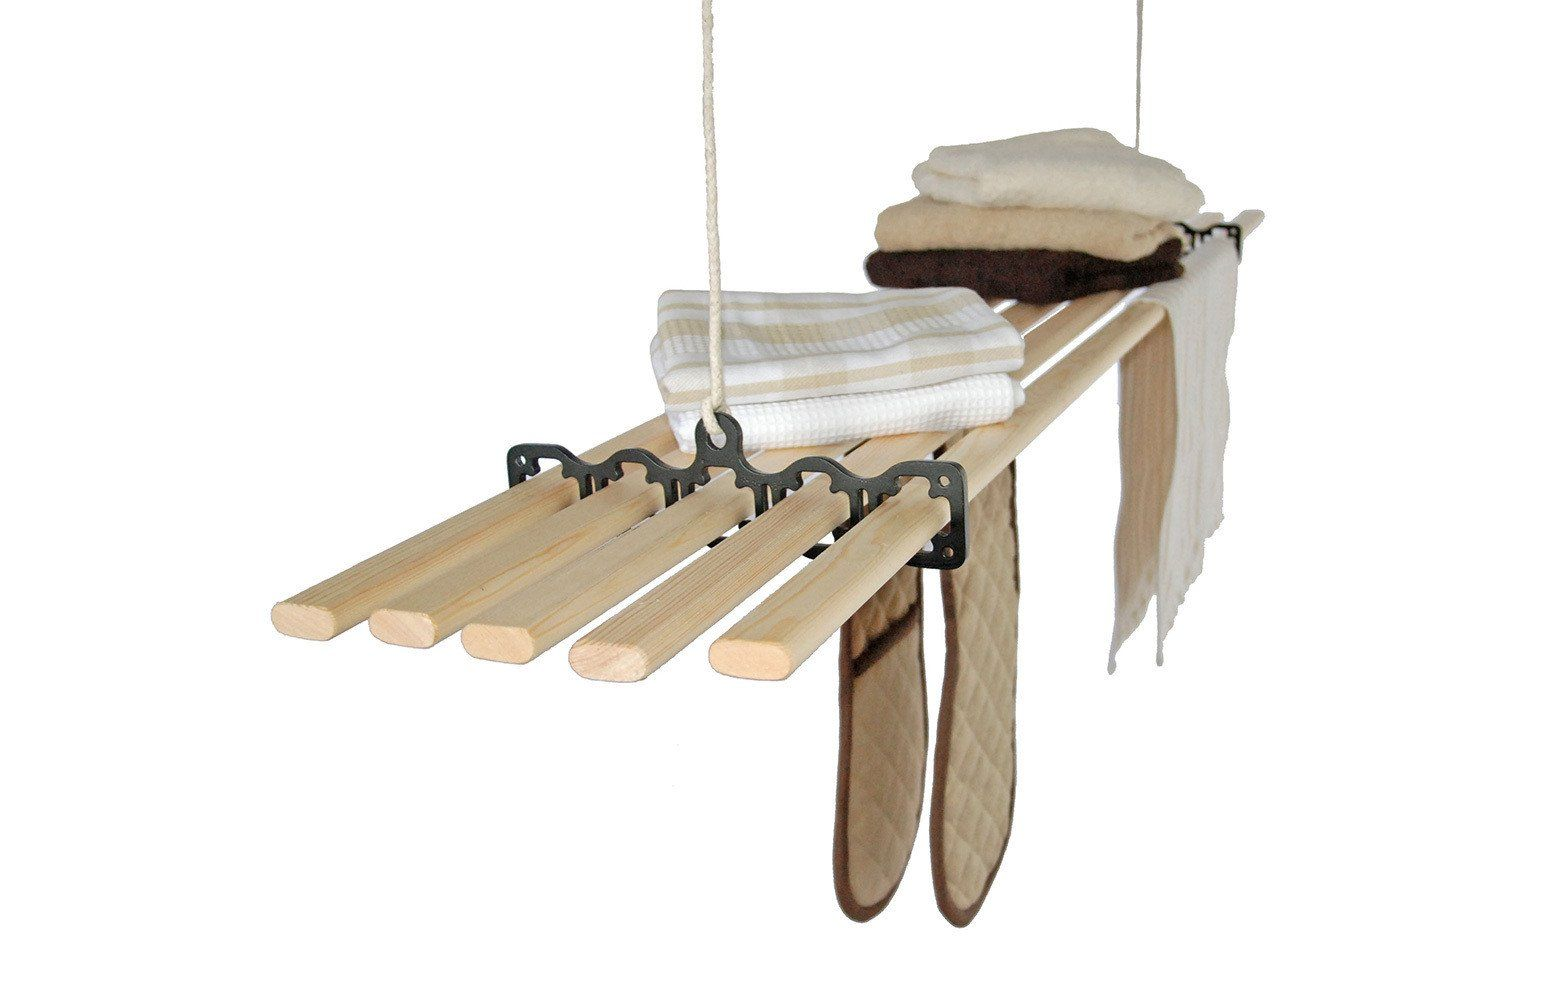 Five Lath Gismo Clothes Airer